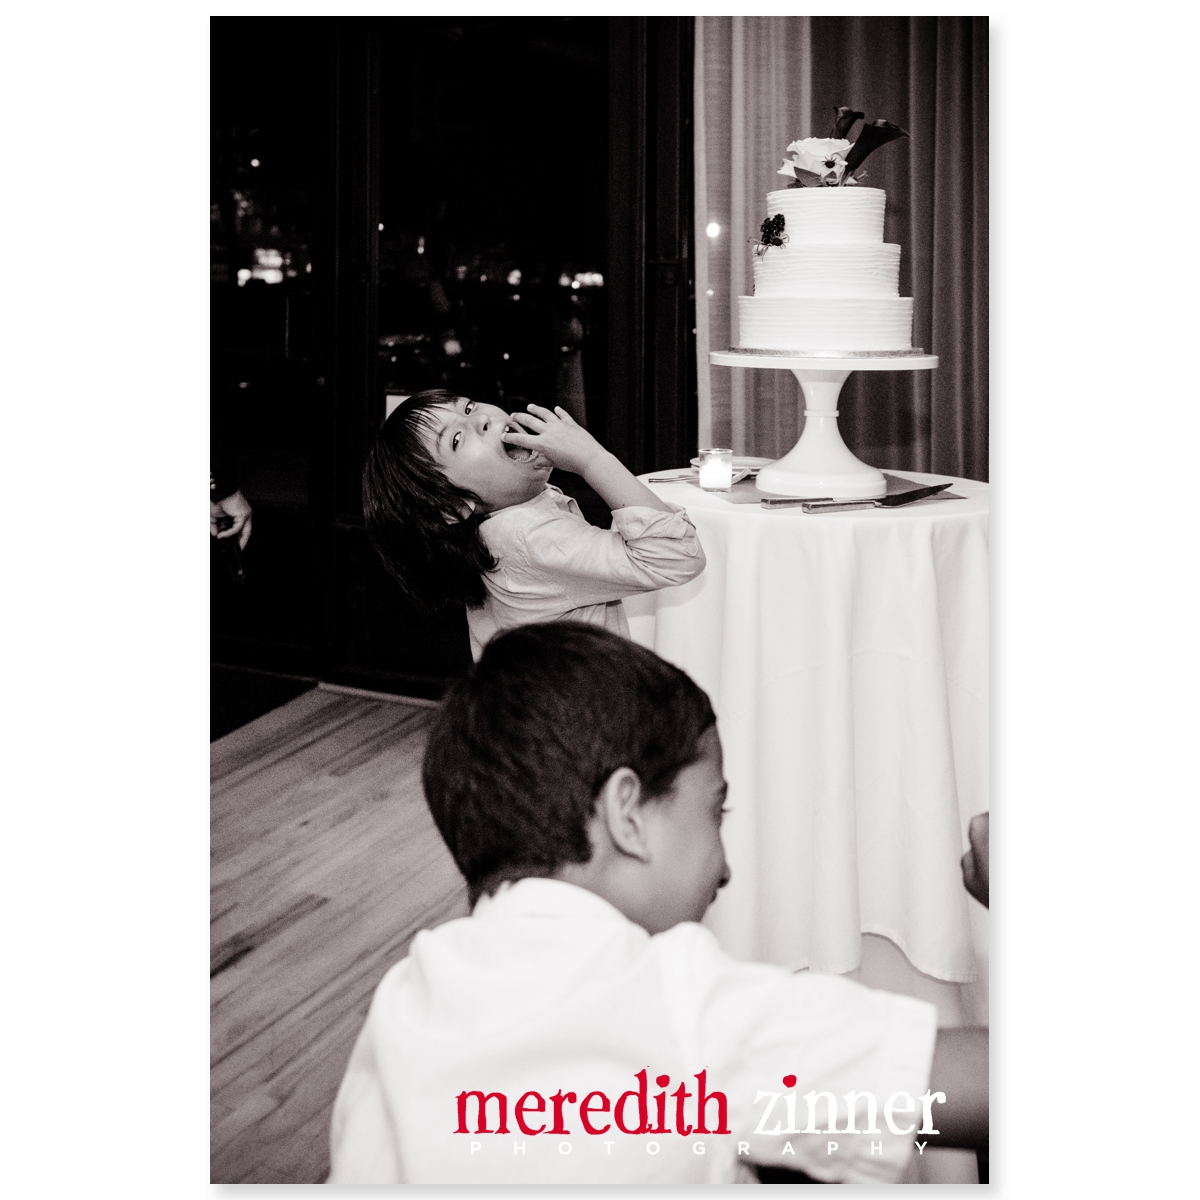 Meredith_Zinner_Photography_StilesCelebration_0294